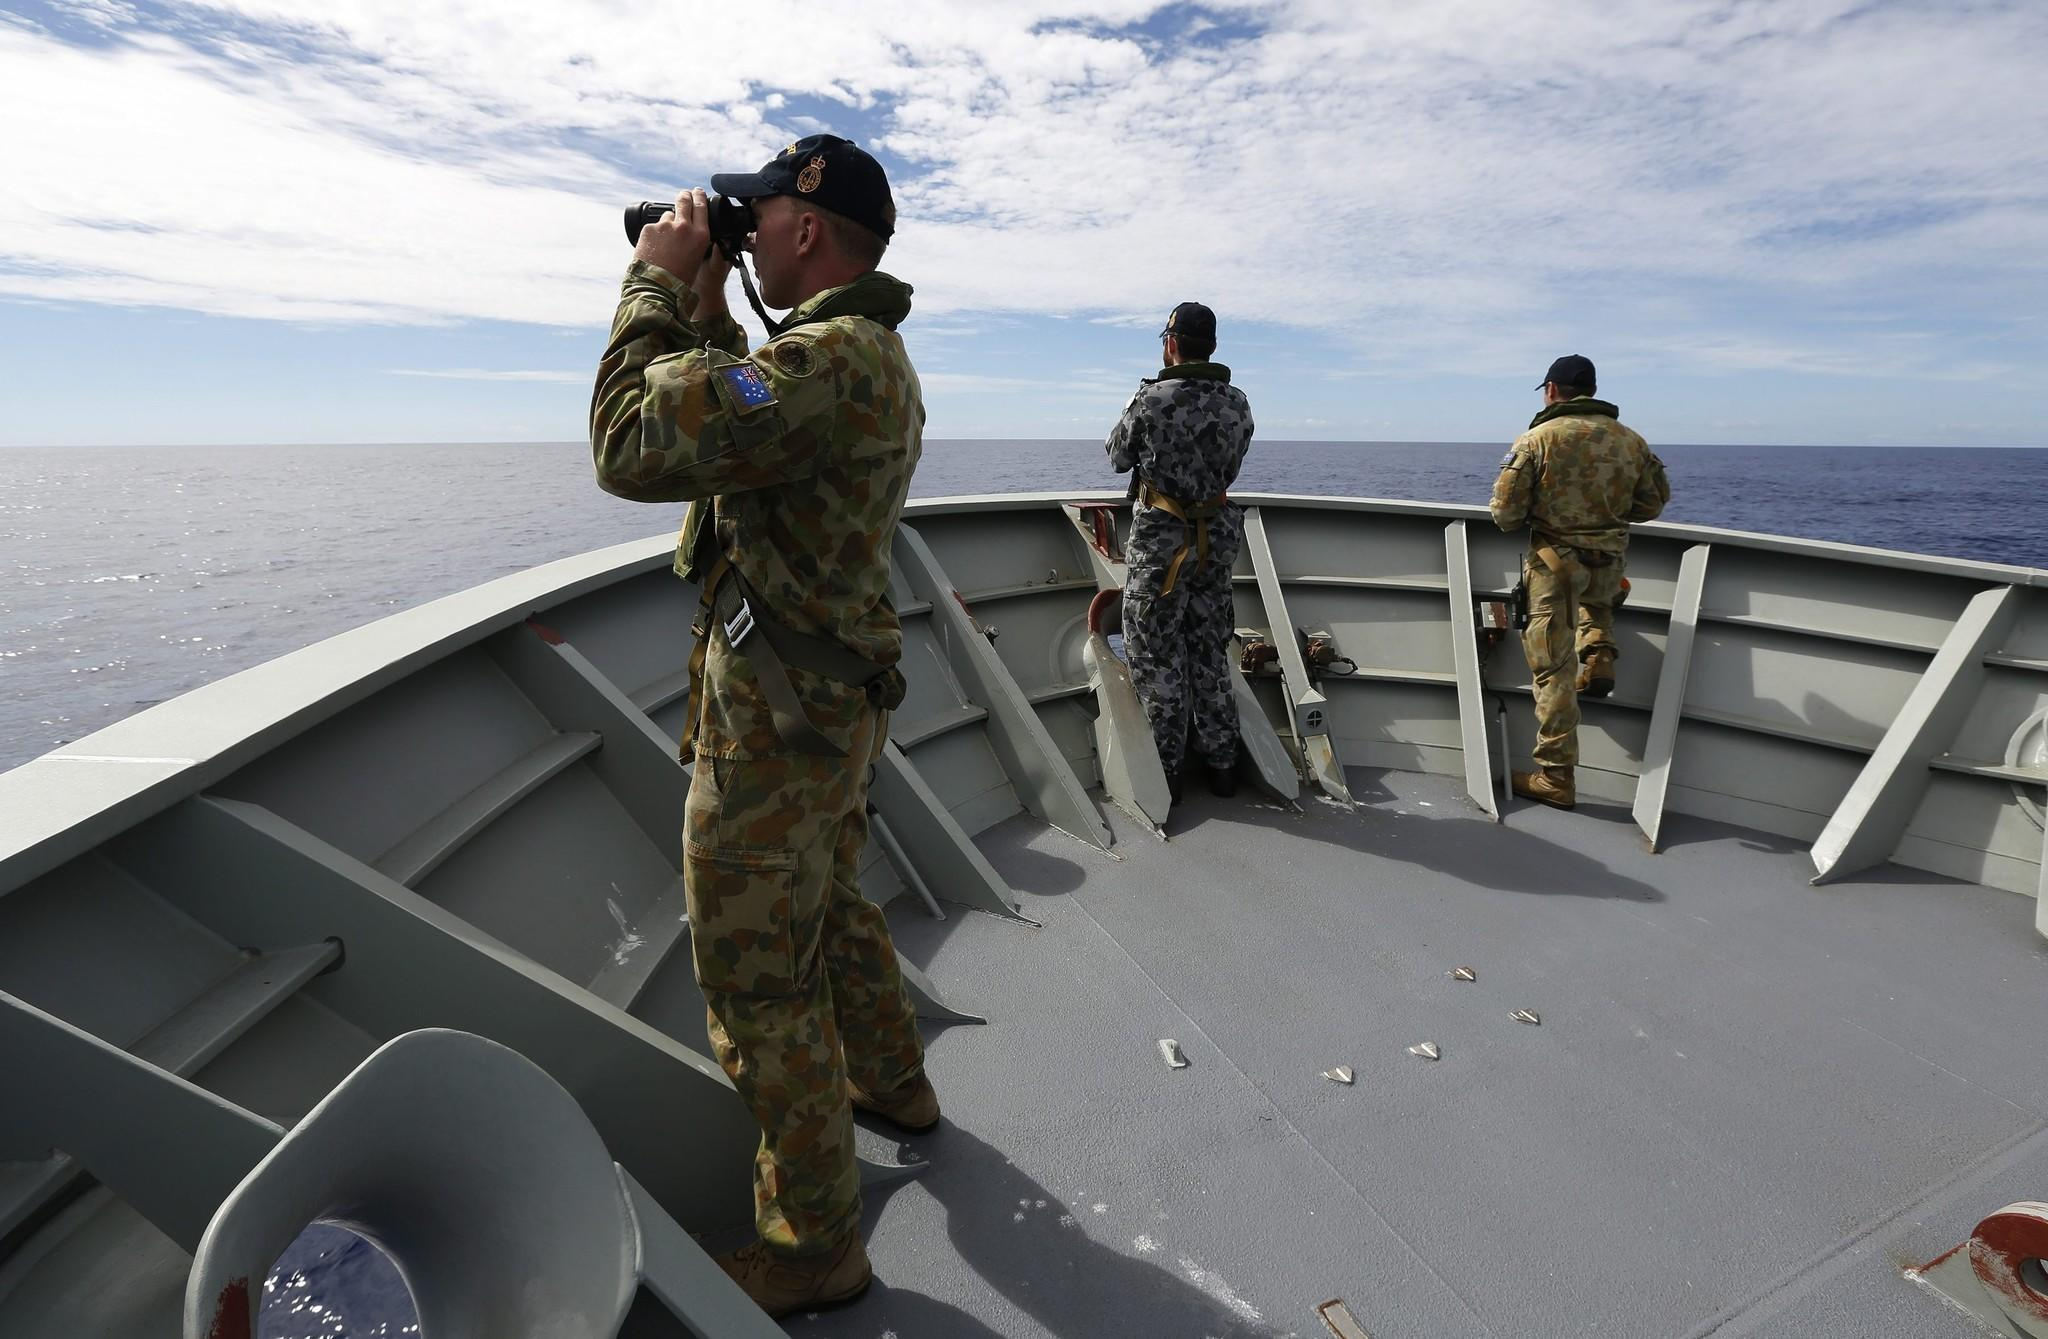 Australian Defense Force personnel aboard the Royal Australian Navy ship Perth search for debris from missing Malaysia Airlines Flight 370.